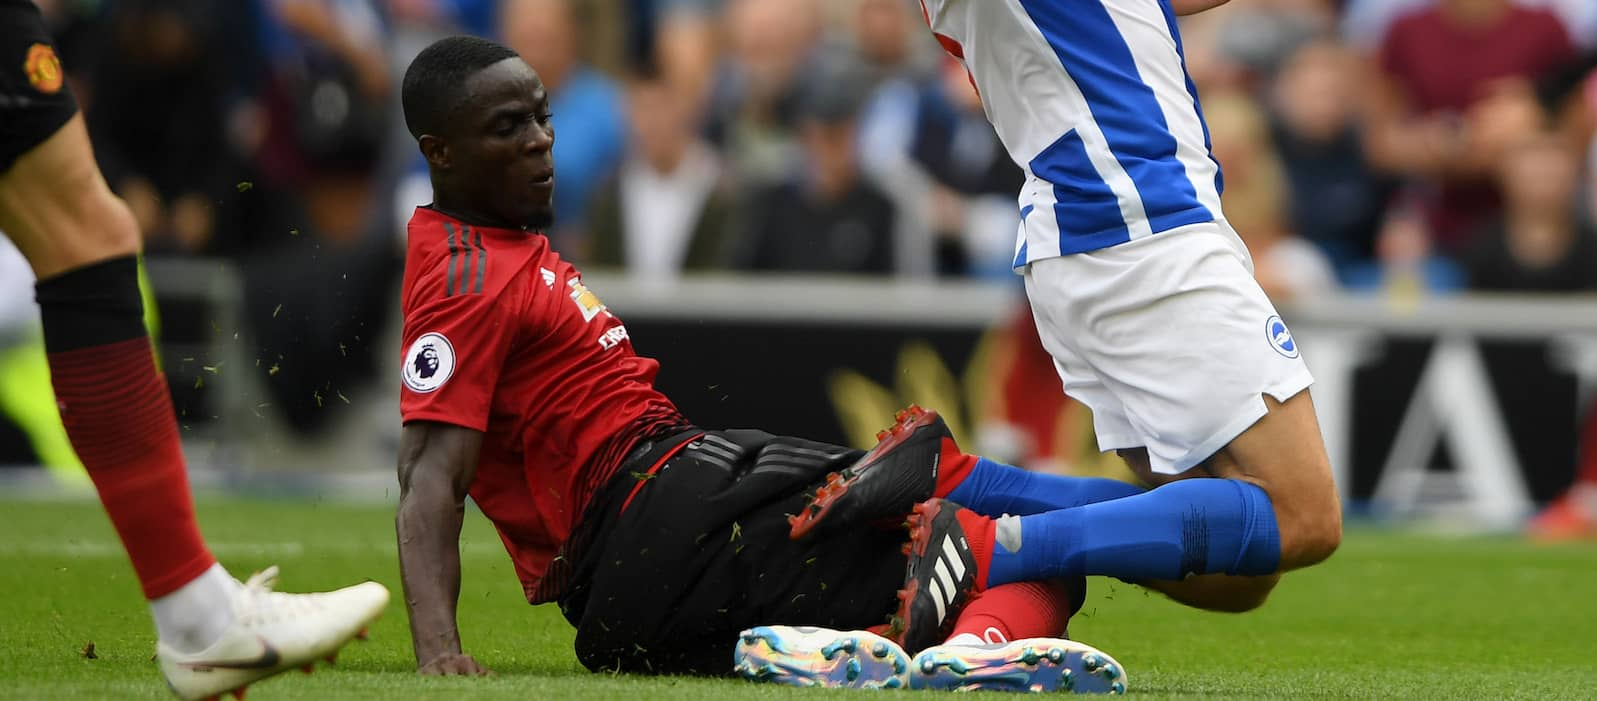 Eric Bailly set for November return from injury at Manchester United – report